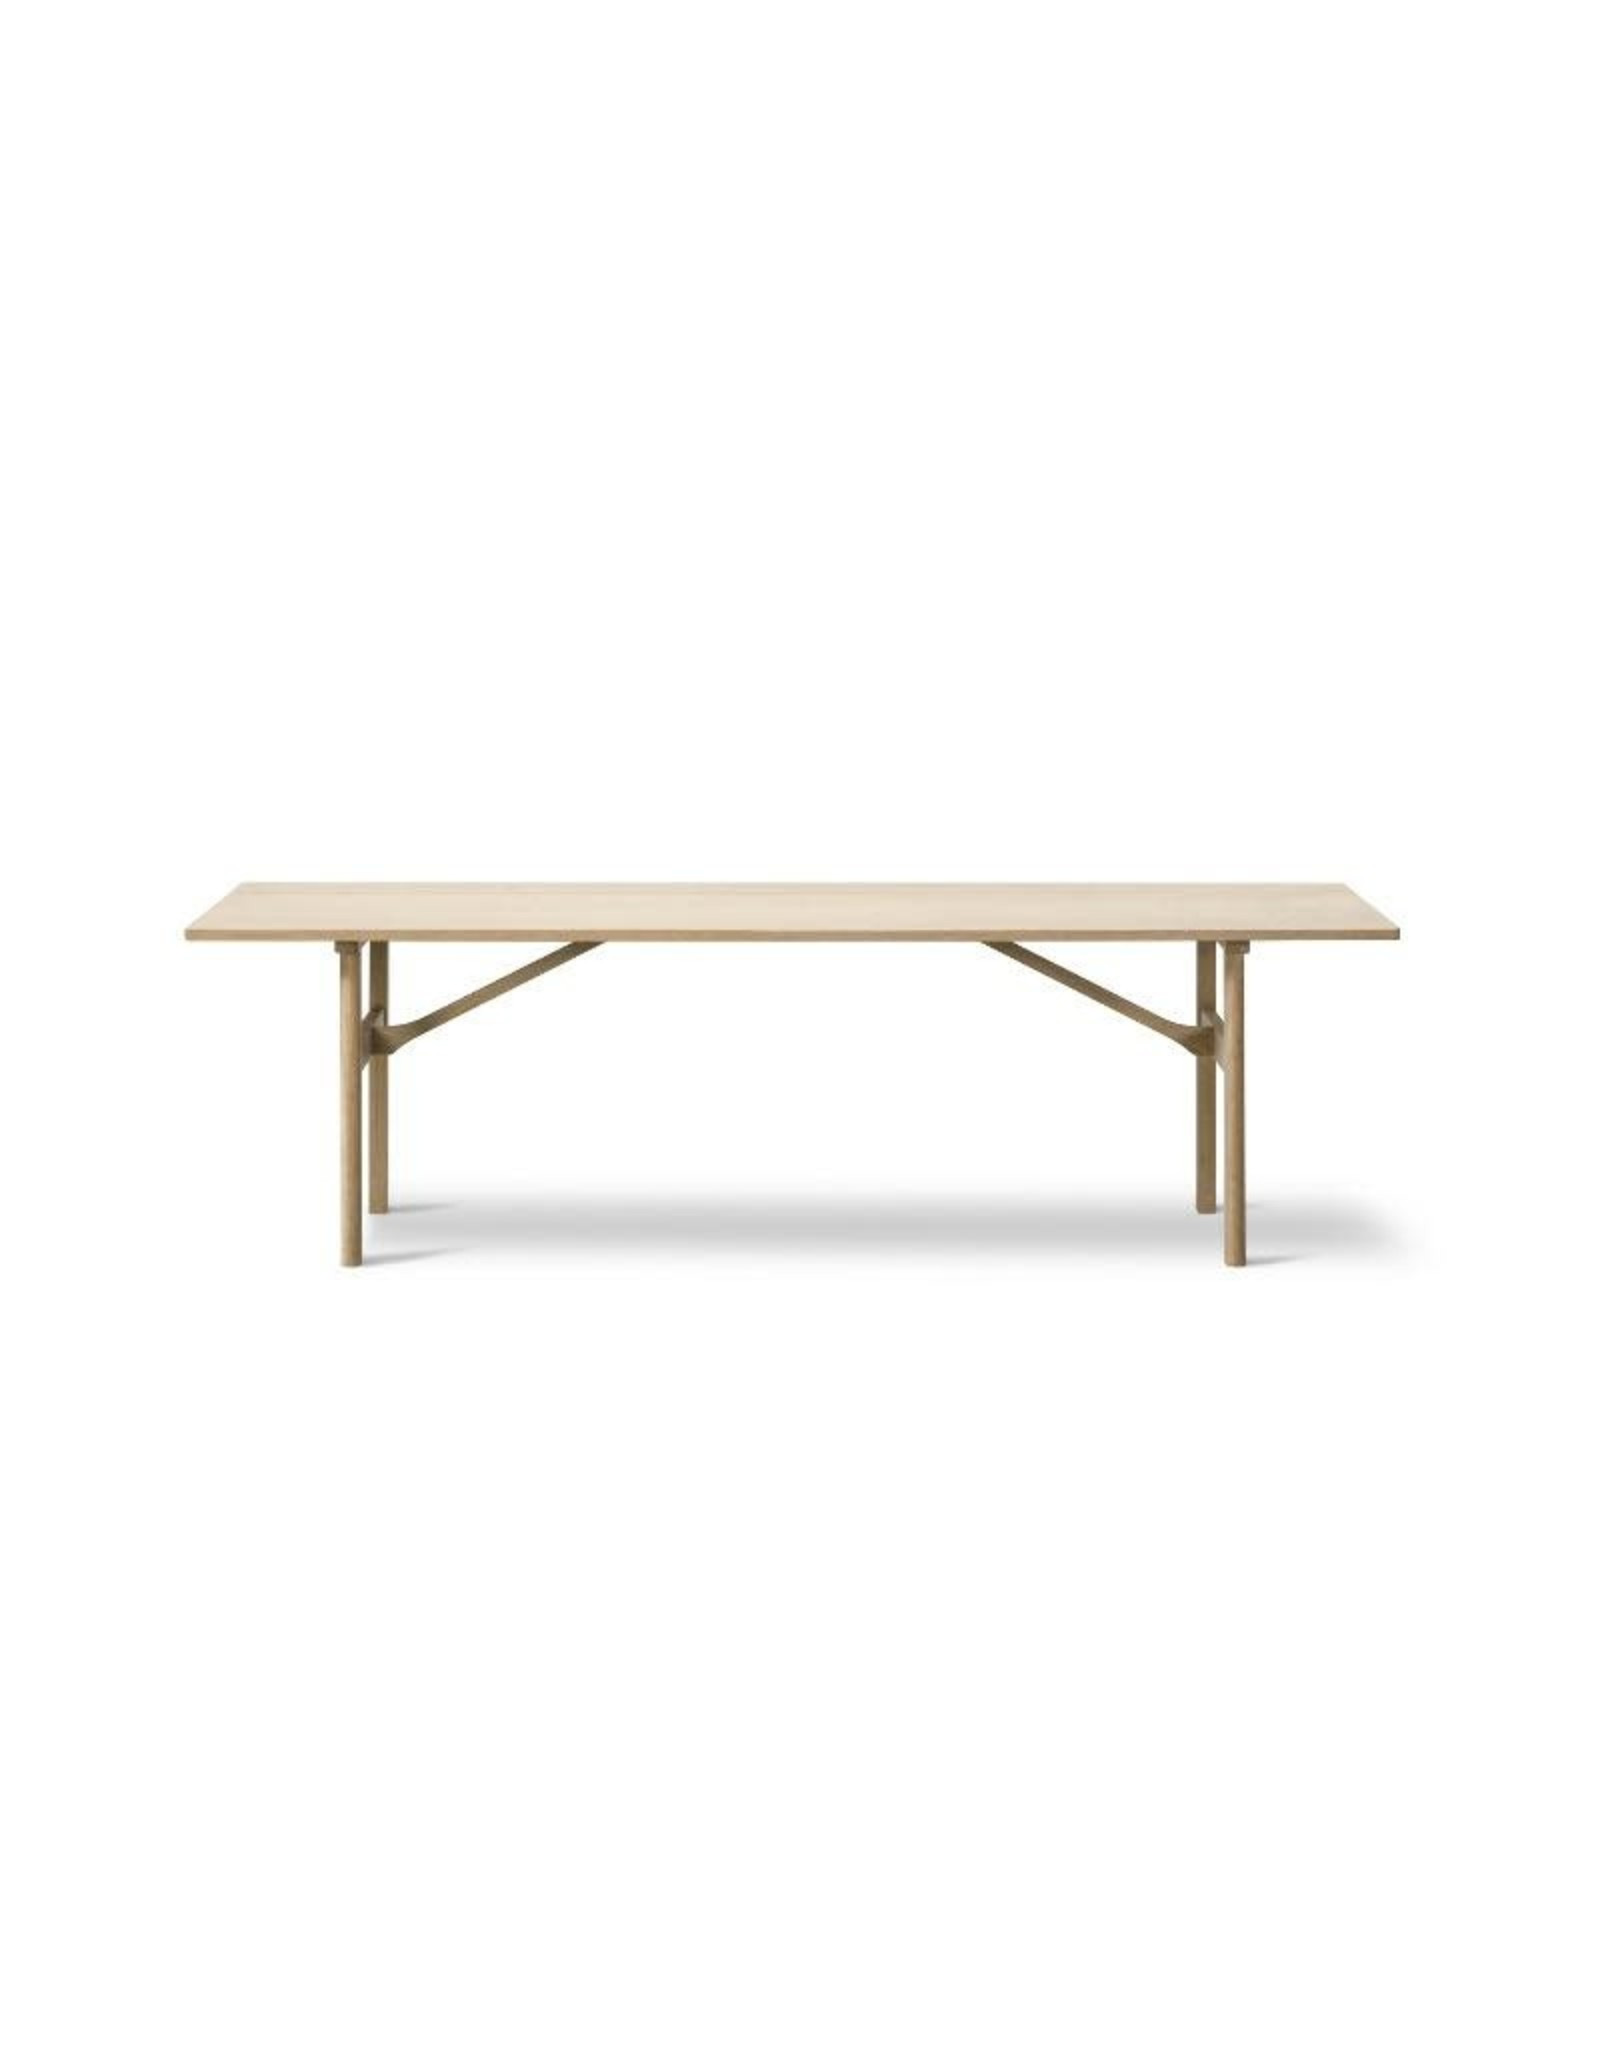 FREDERICIA 6384 DINING TABLE